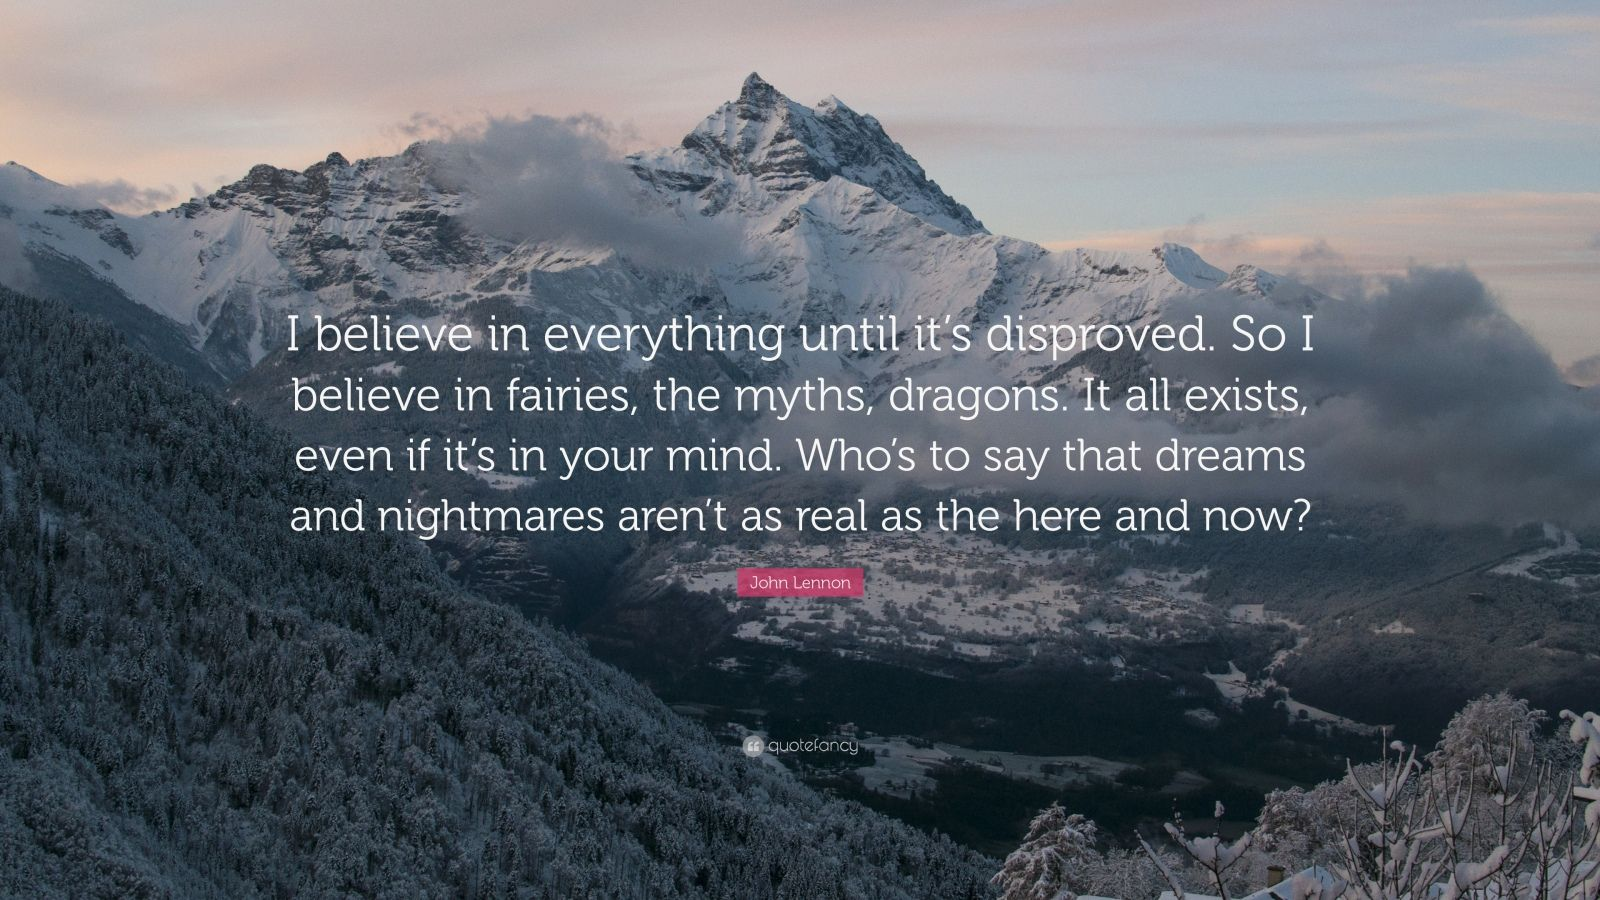 """John Lennon Quote: """"I believe in everything until it's disproved. So I believe in fairies, the myths, dragons. It all exists, even if it's in your mind. Who's to say that dreams and nightmares aren't as real as the here and now?"""""""